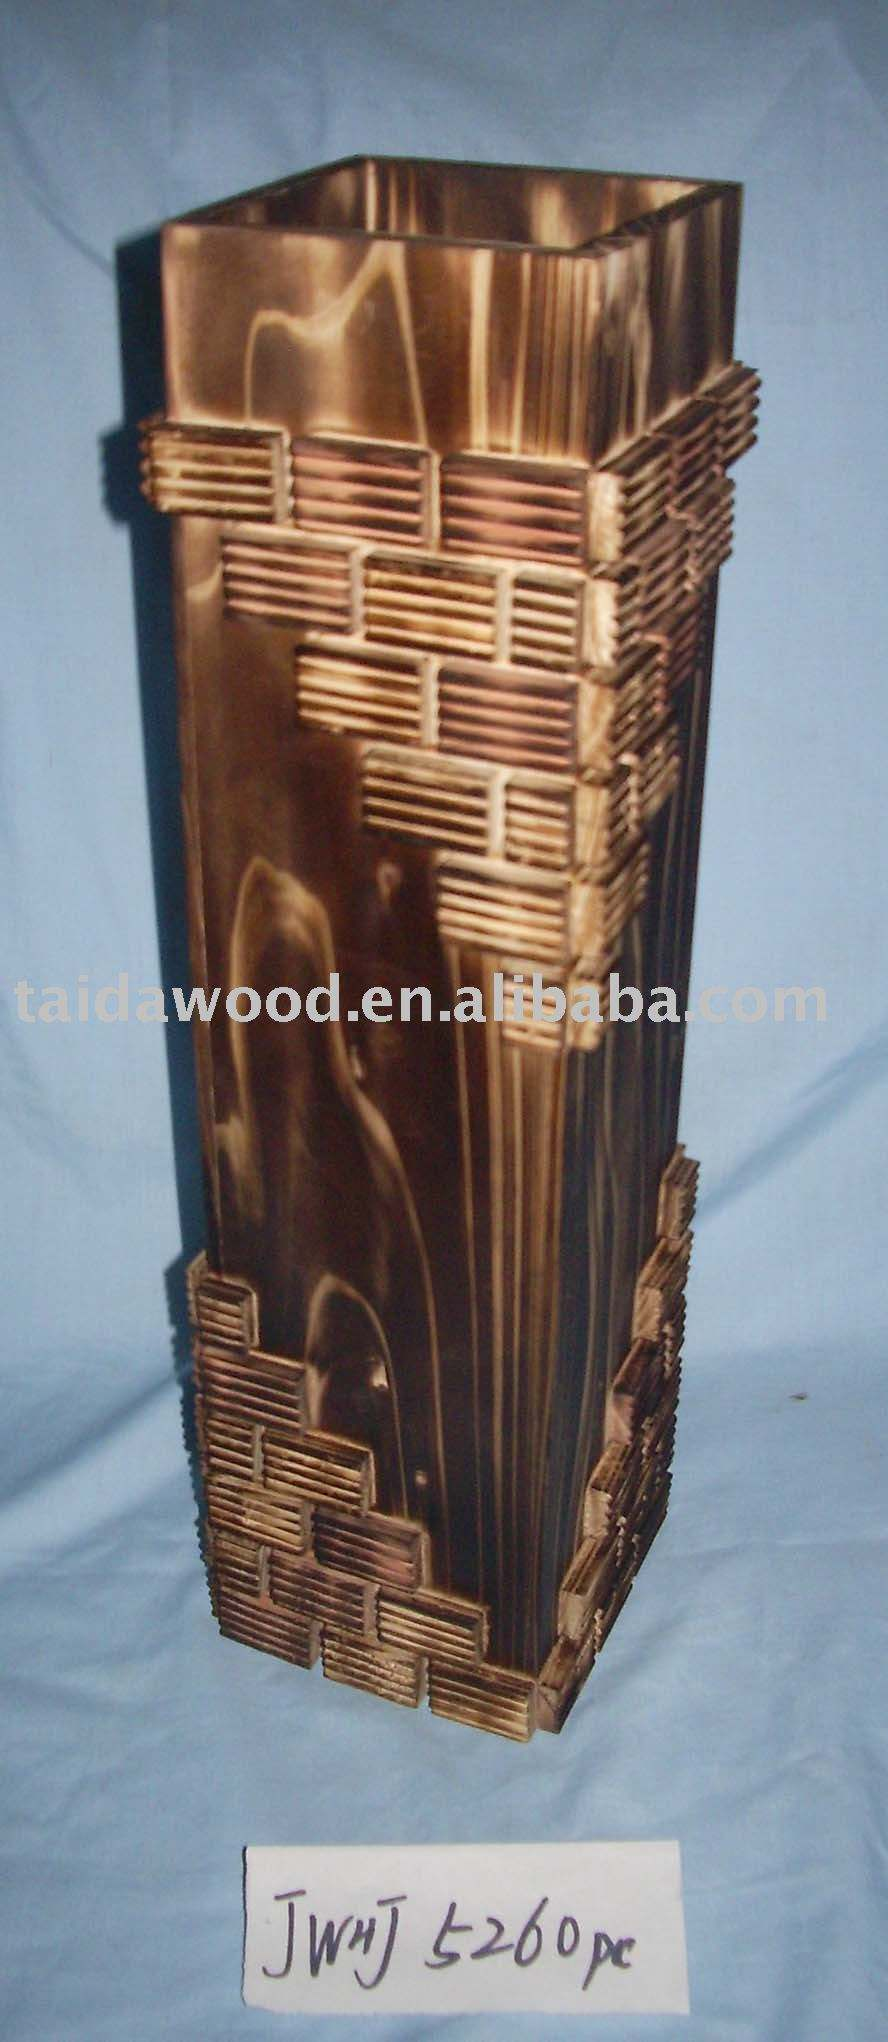 Retro whole wood / woody Mini vase / flower / dining table decoration / hotel tableware